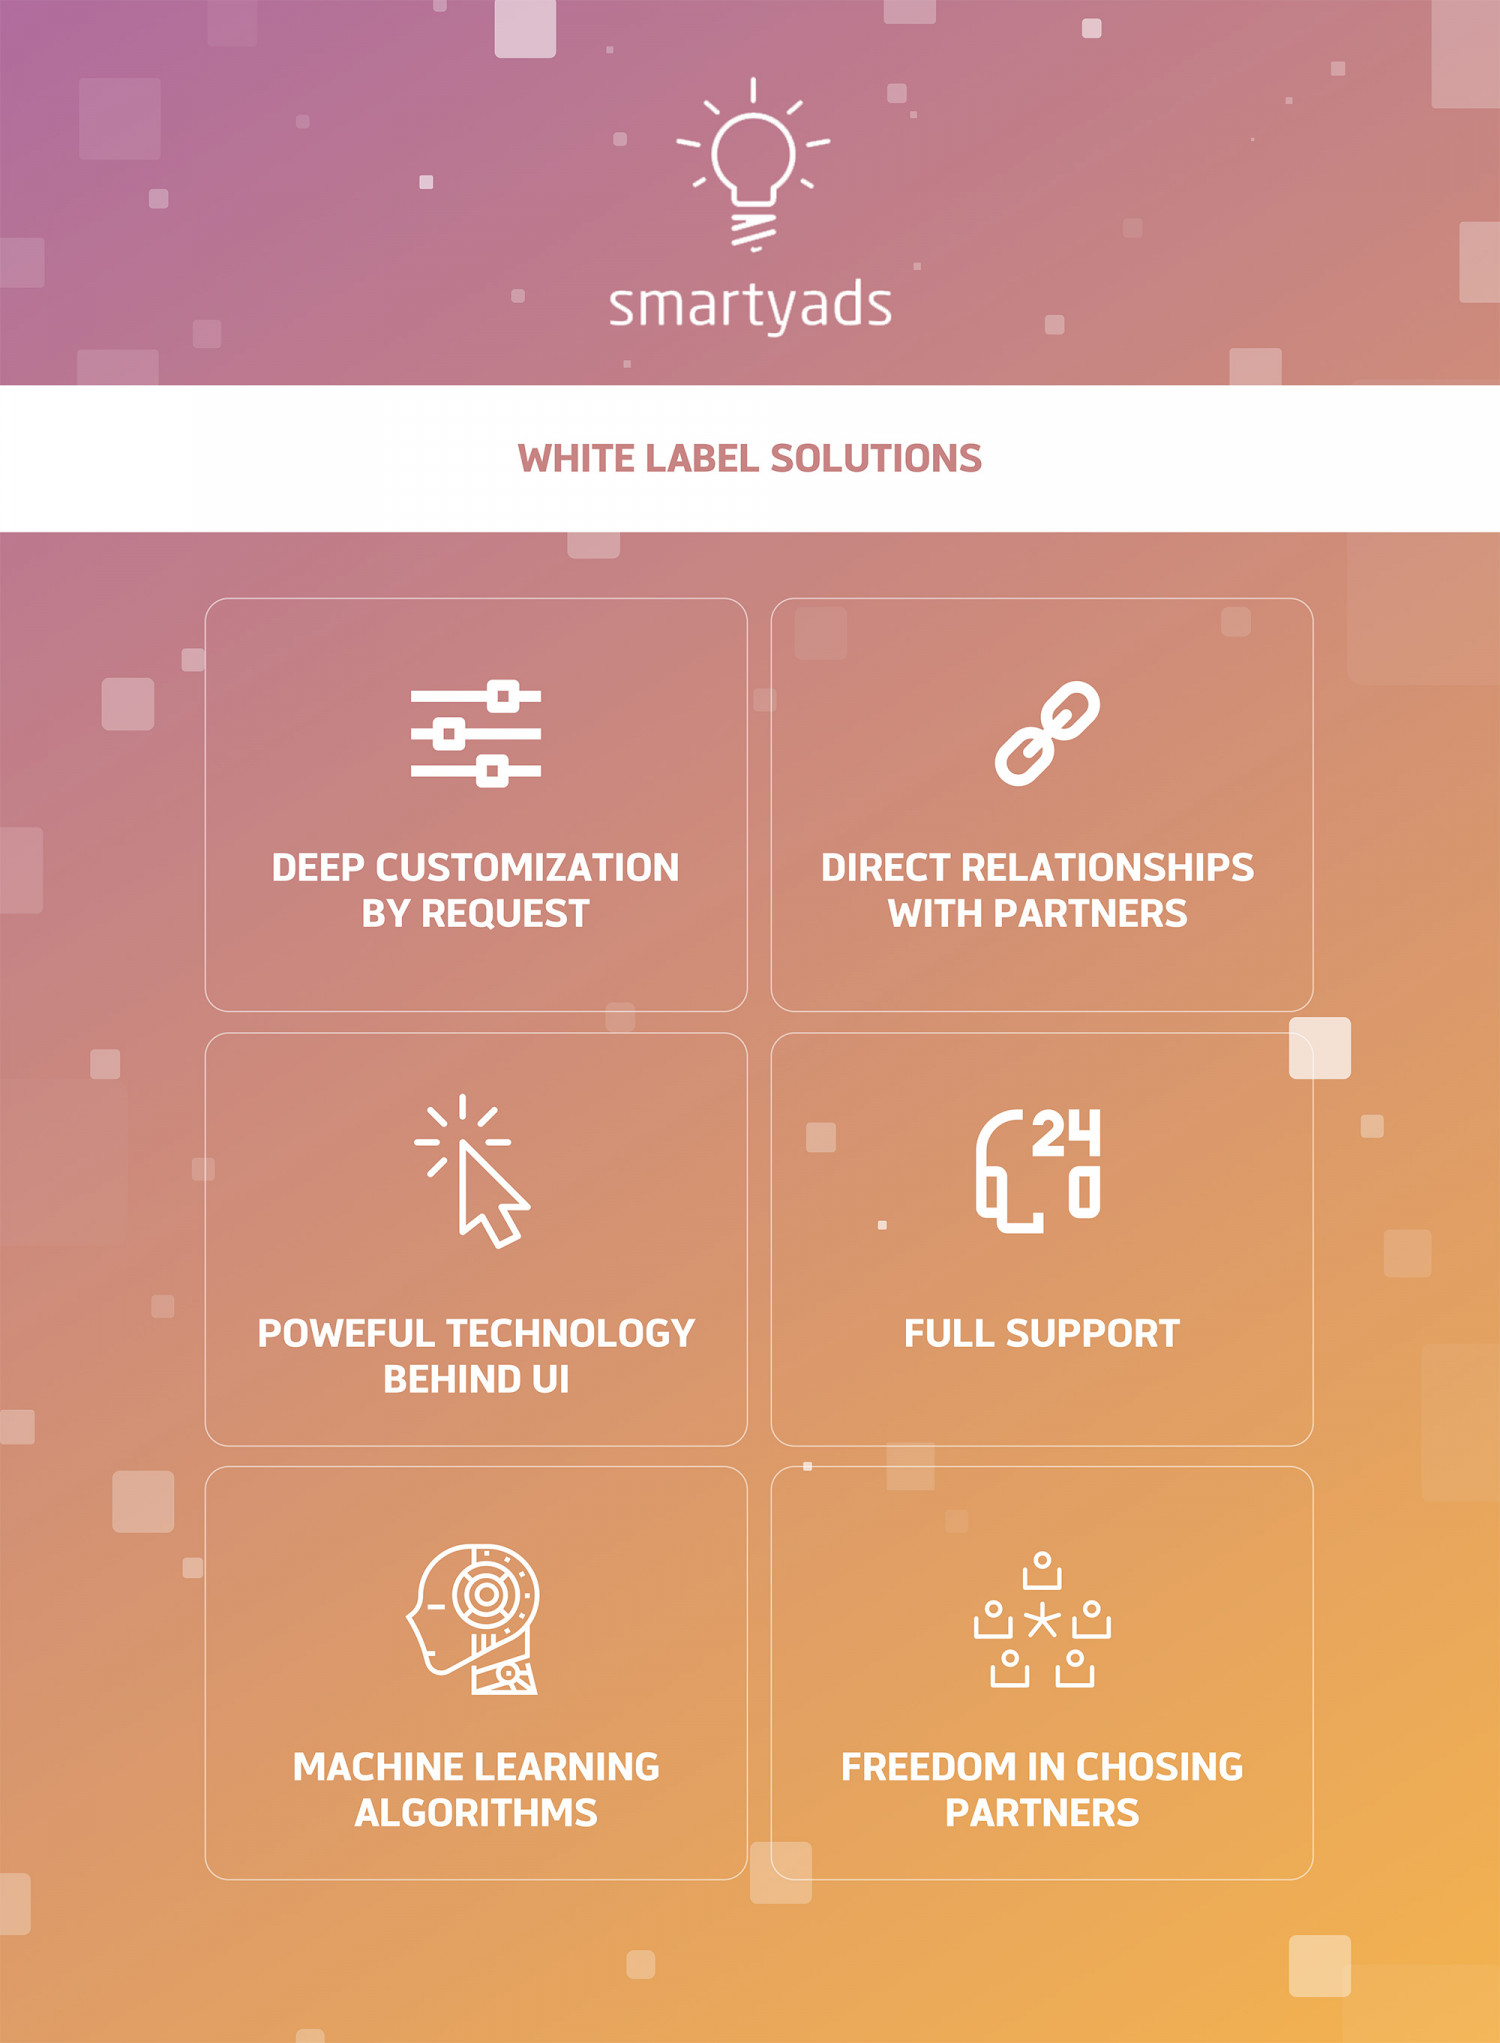 SmartyAds White Label solution Infographic